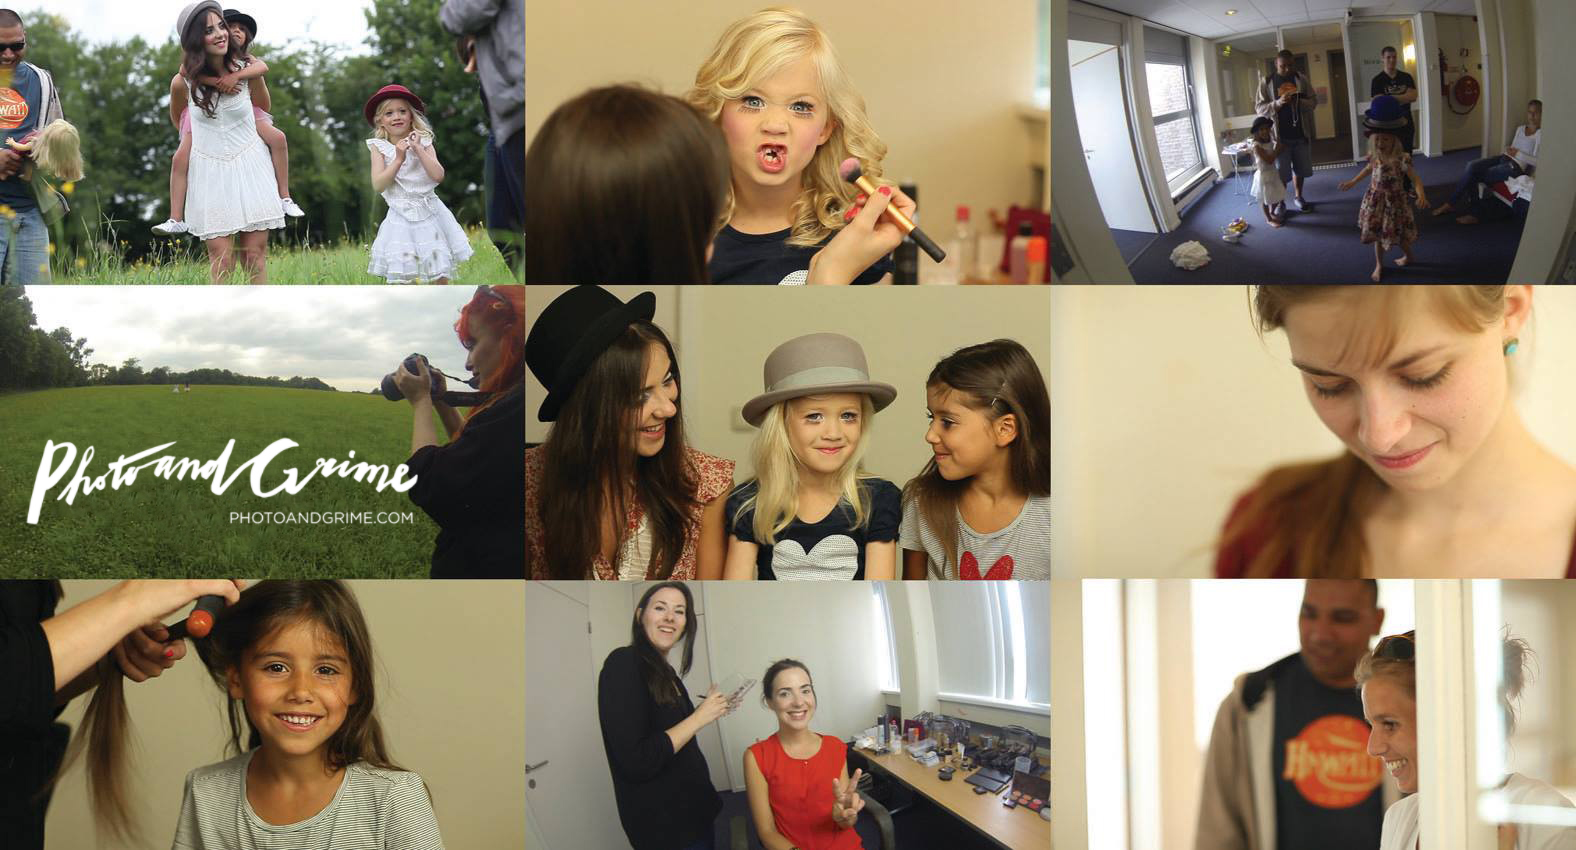 Video stills from the behind-the-scenes photoshoot video, for Sandy's CD Promise not to cry.